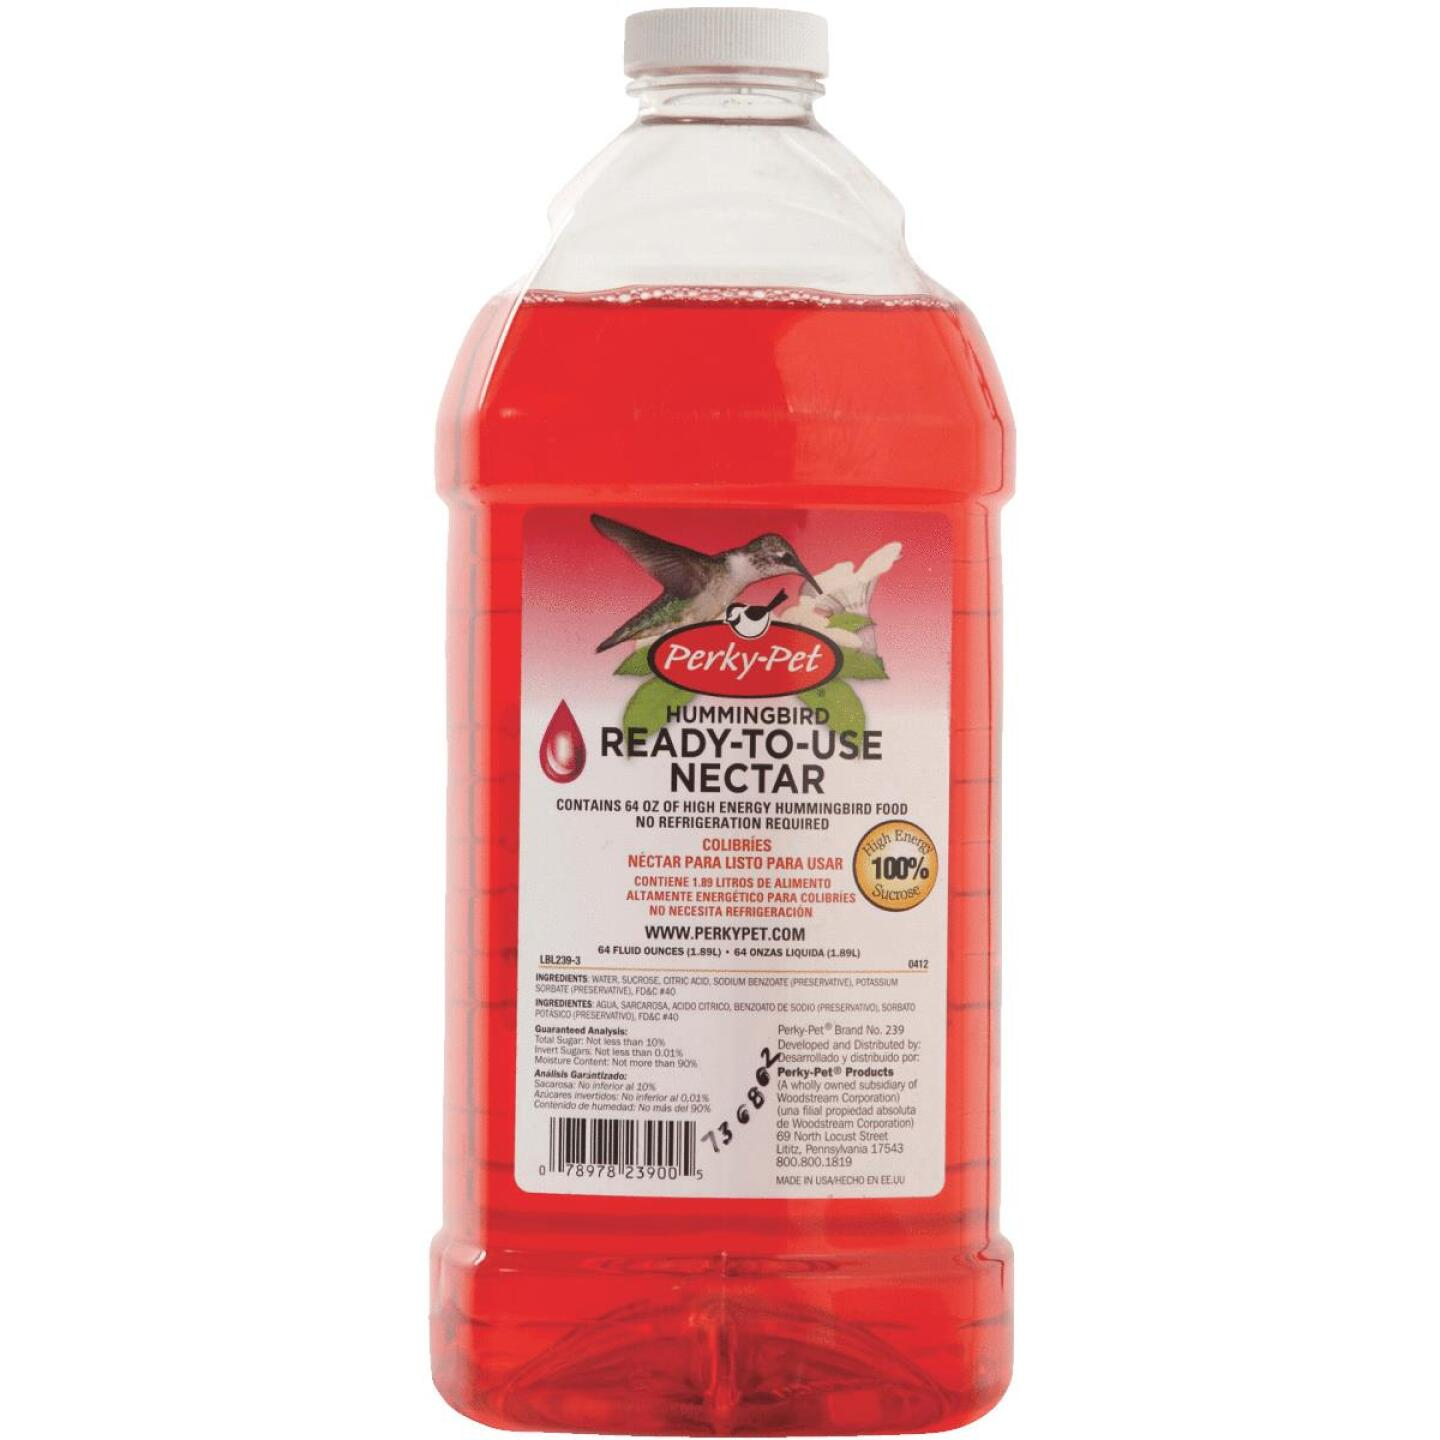 Perky-Pet 64 Oz. Red Ready To Use Liquid Hummingbird Nectar Image 2